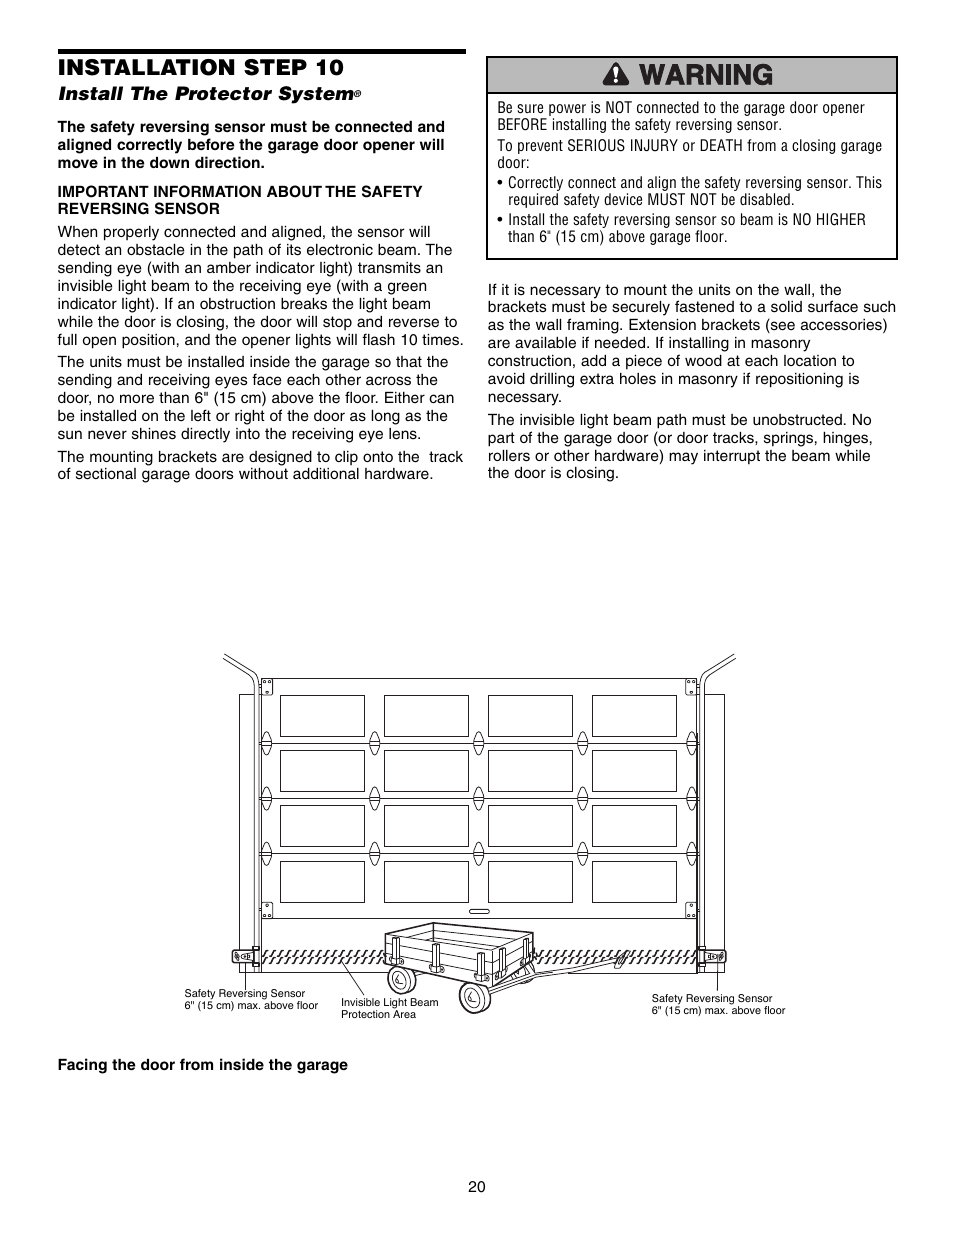 install the protector system, installation step 10 | chamberlain security  hd200dm user manual | page 20 / 40